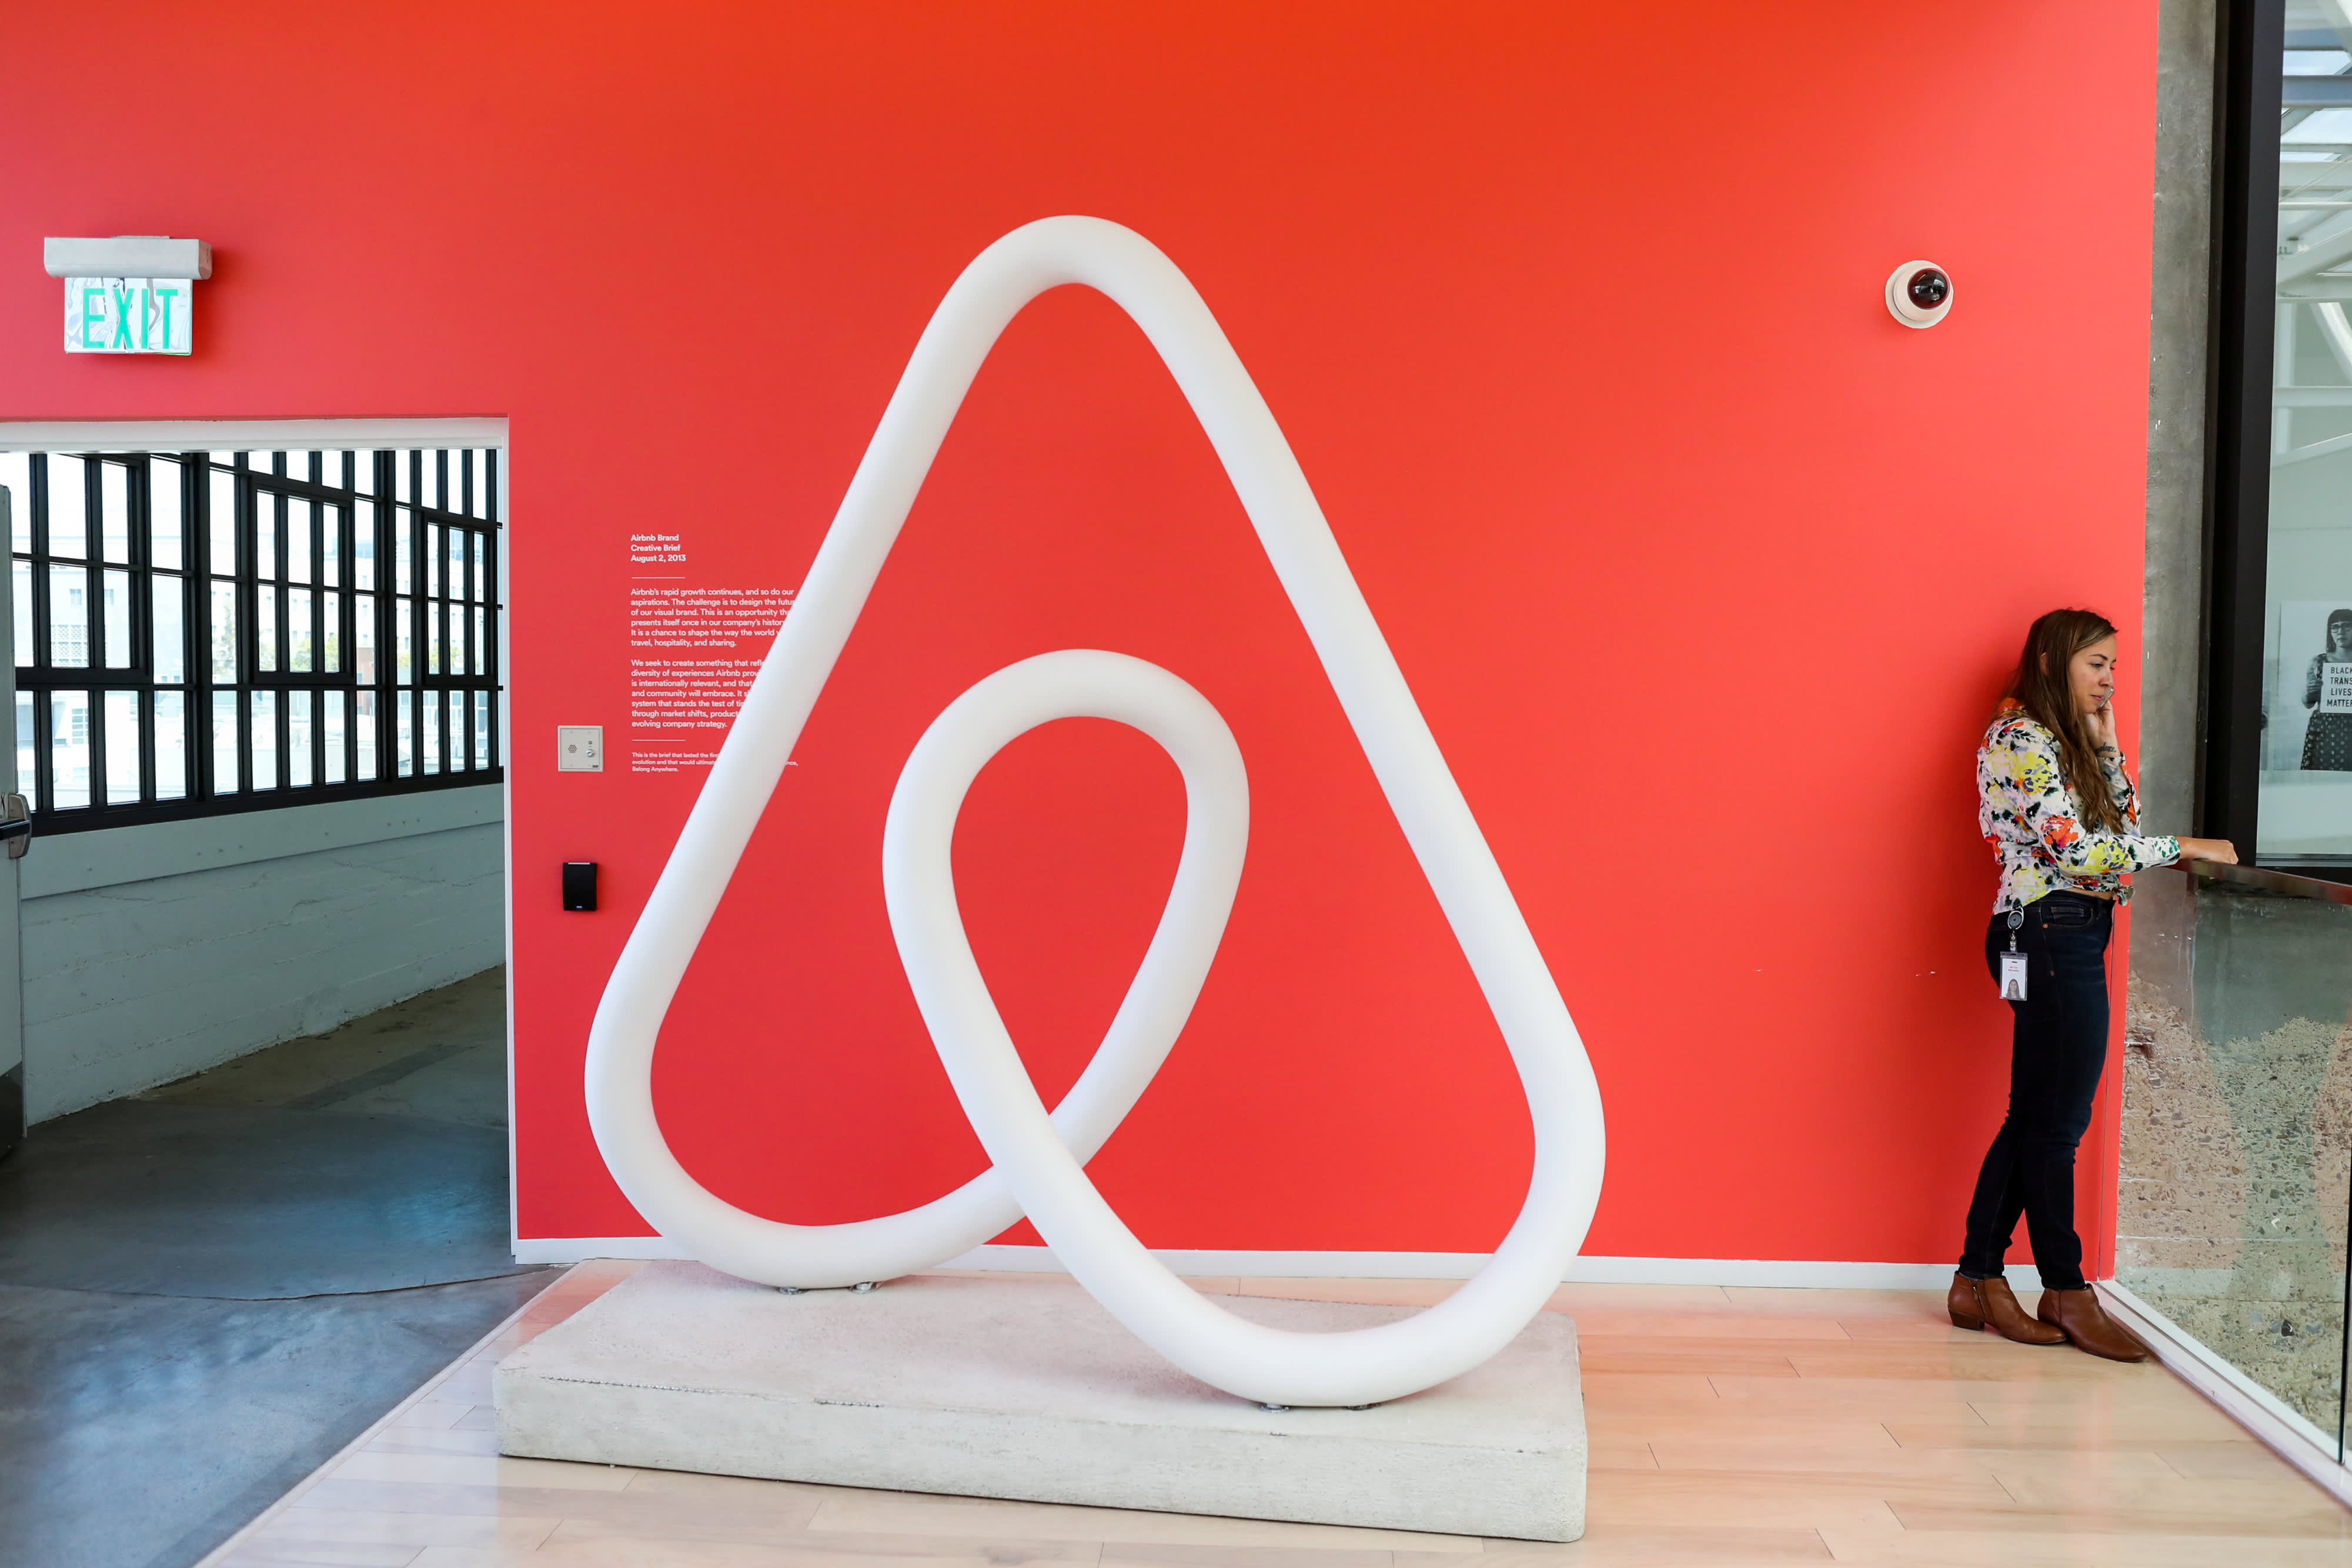 Airbnb canceling and blocking D.C. reservations during inauguration week – CNBC